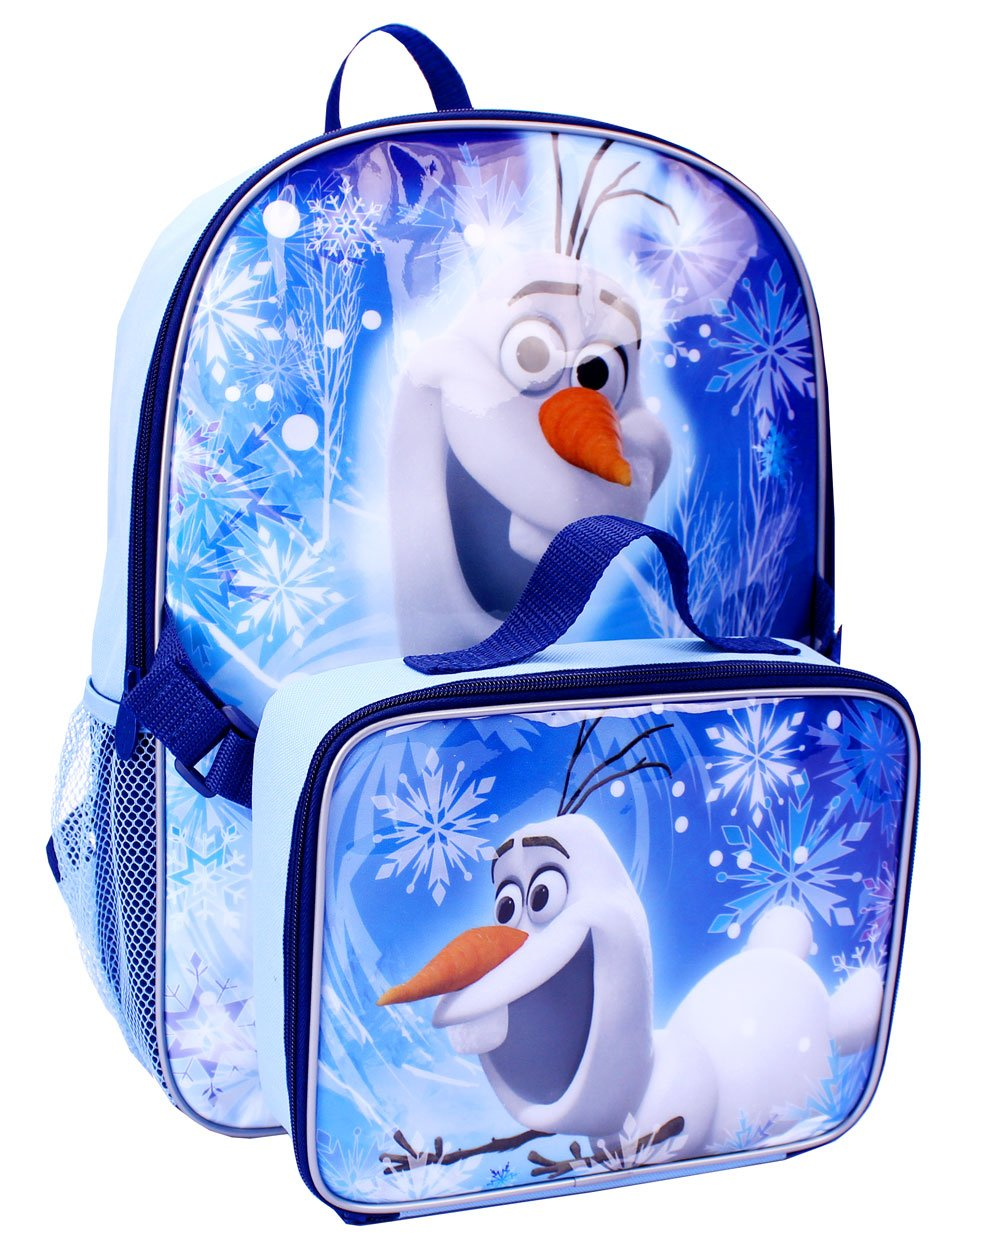 Disney Frozen 16 Olaf the Snowman School Backpack with Detachable Lunch Box